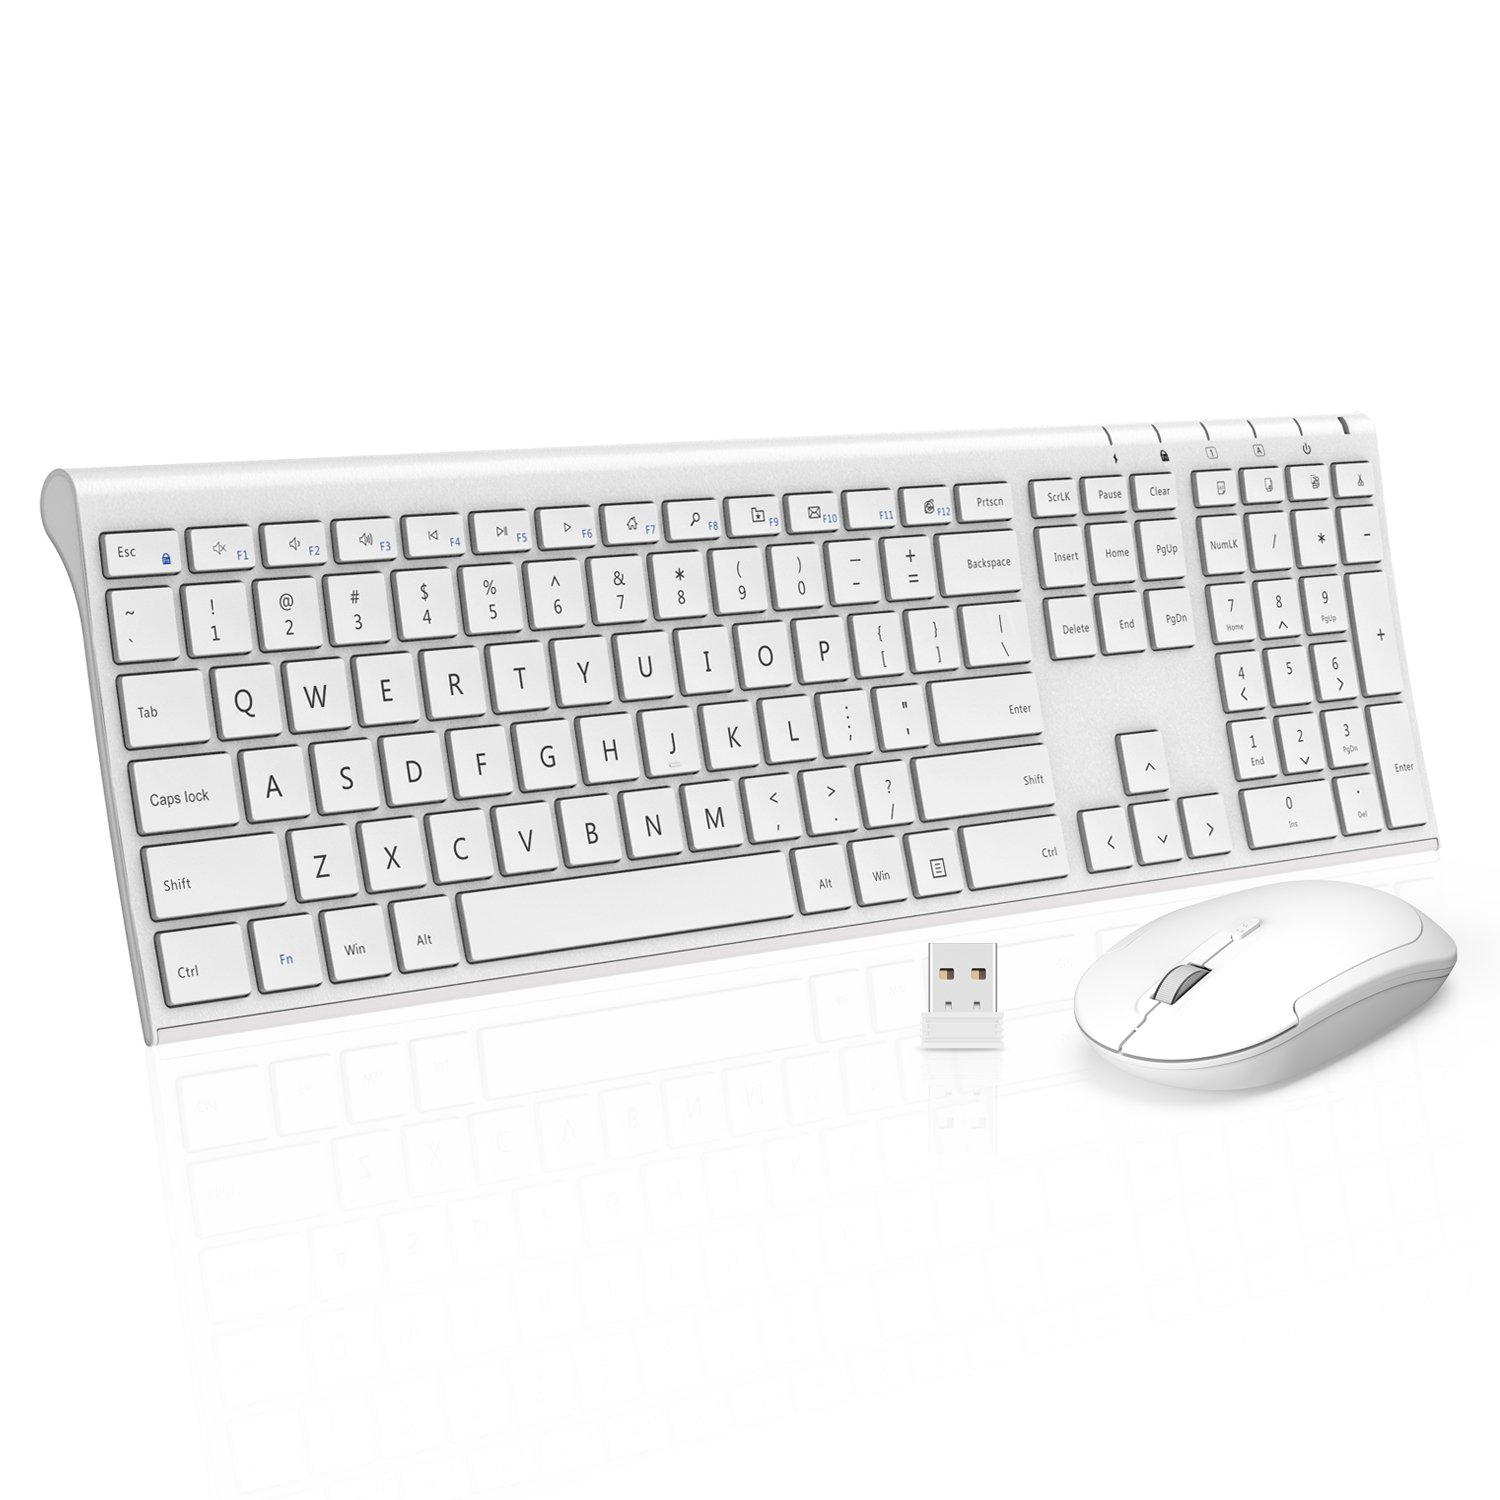 Wireless Keyboard Mouse, Jelly Comb 2.4GHz Ultra Slim Full Size Rechargeable Wireless Keyboard and Mouse Combo for Windows, Laptop, Notebook, PC, Desktop, Computer (White)